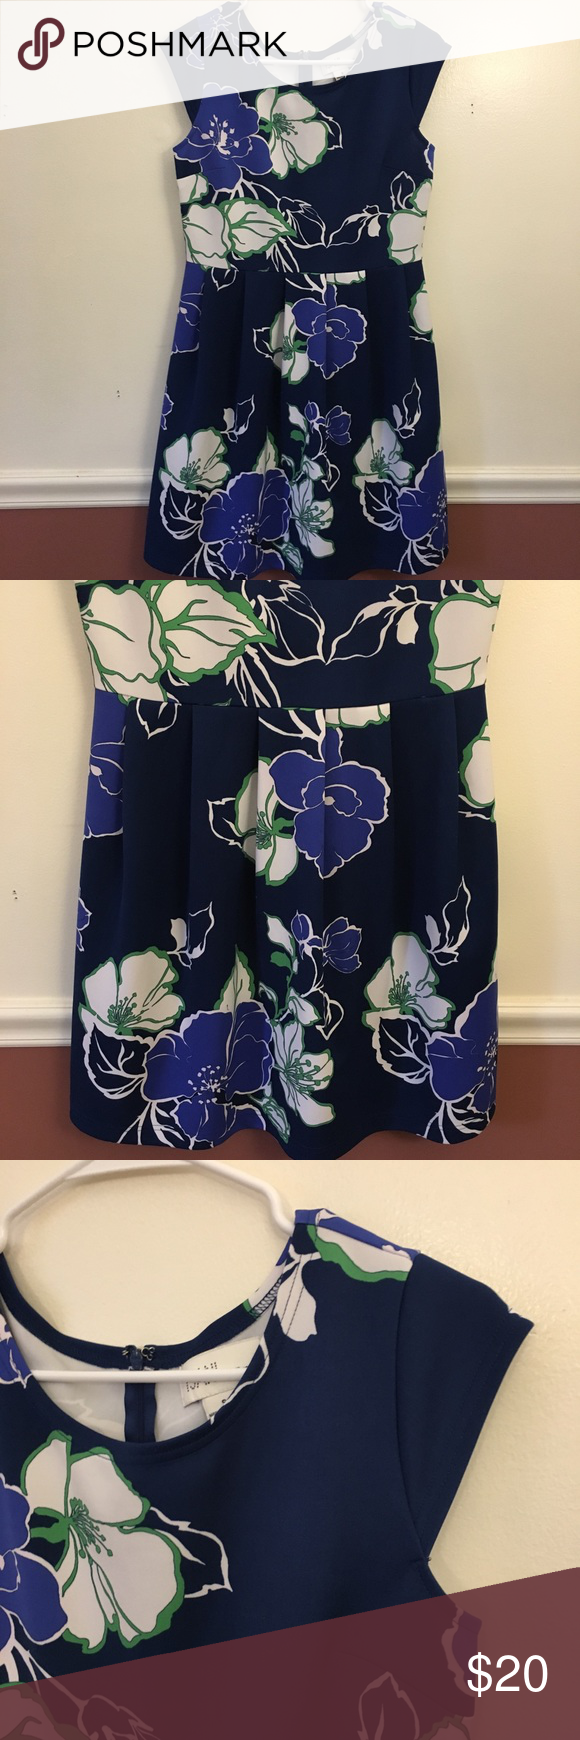 Isani For Target A Line Blue Green Floral Dress Isani For Target A Line Dress Size Small Blue Green Floral Pat Green Floral Dress Floral Dress Clothes Design [ 1740 x 580 Pixel ]